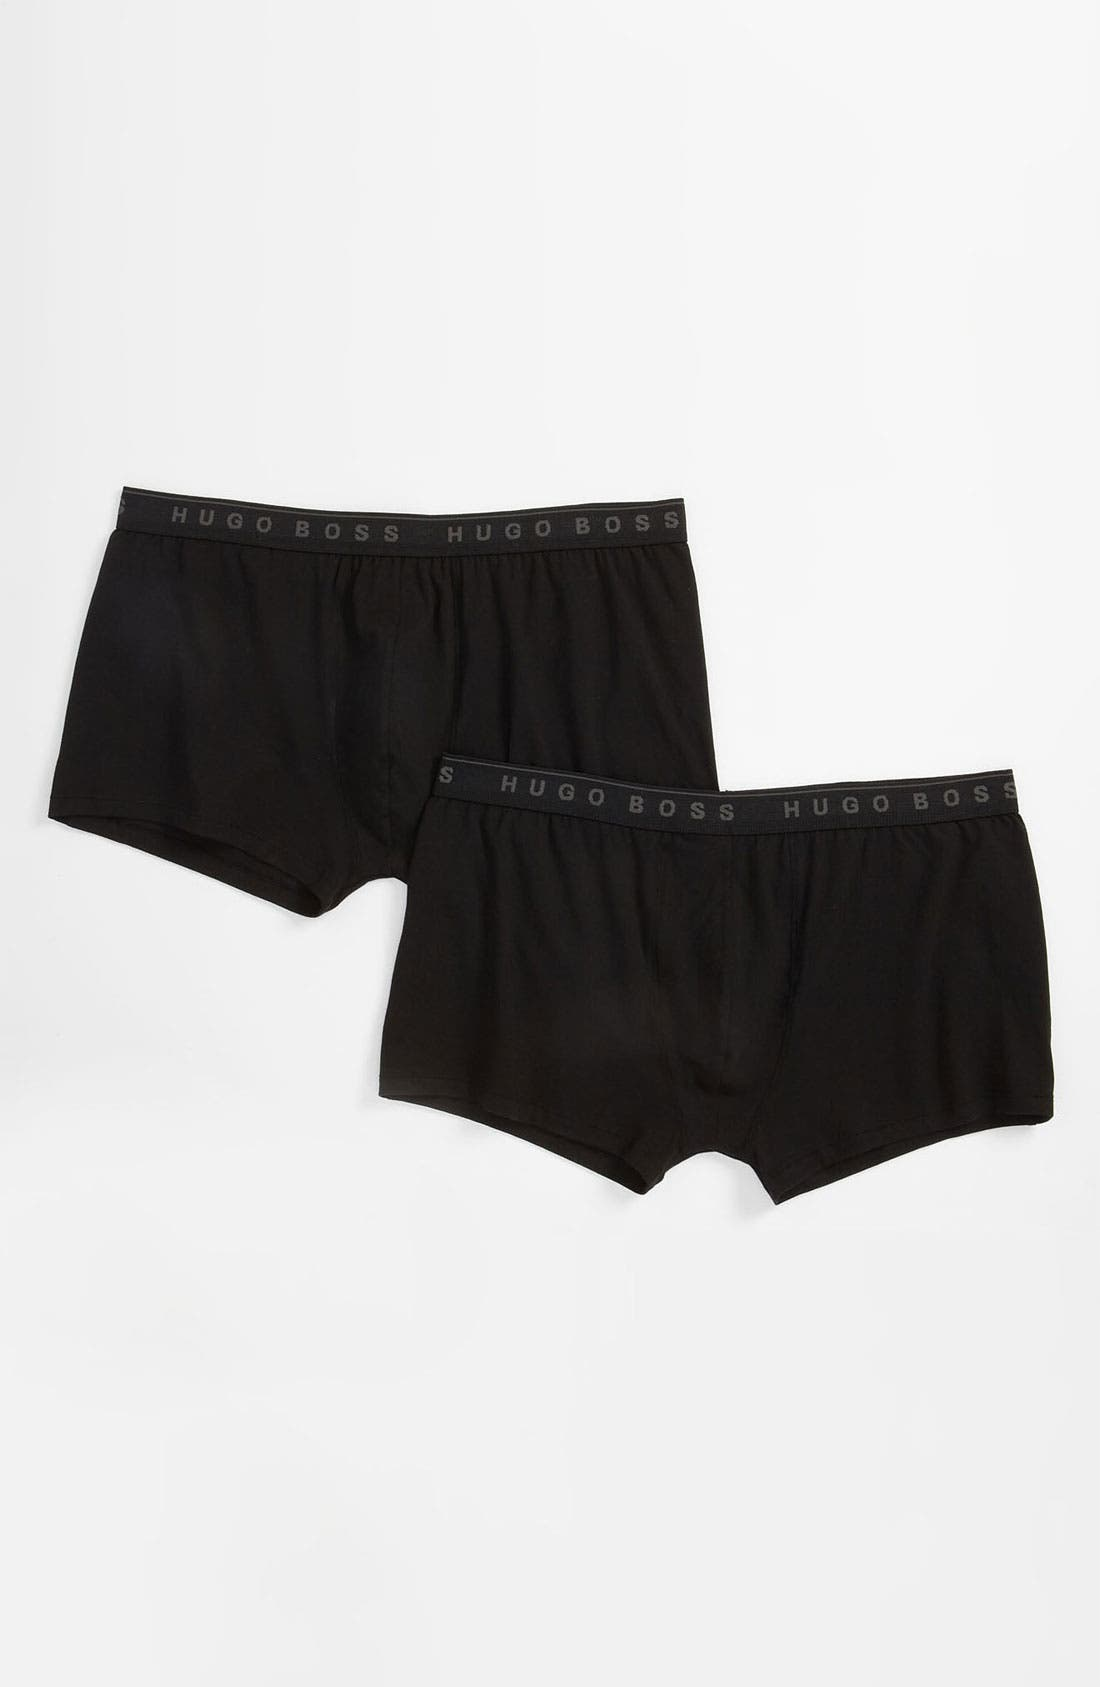 Main Image - BOSS Black Stretch Cotton Trunks (2-Pack) (Big) (Online Exclusive)